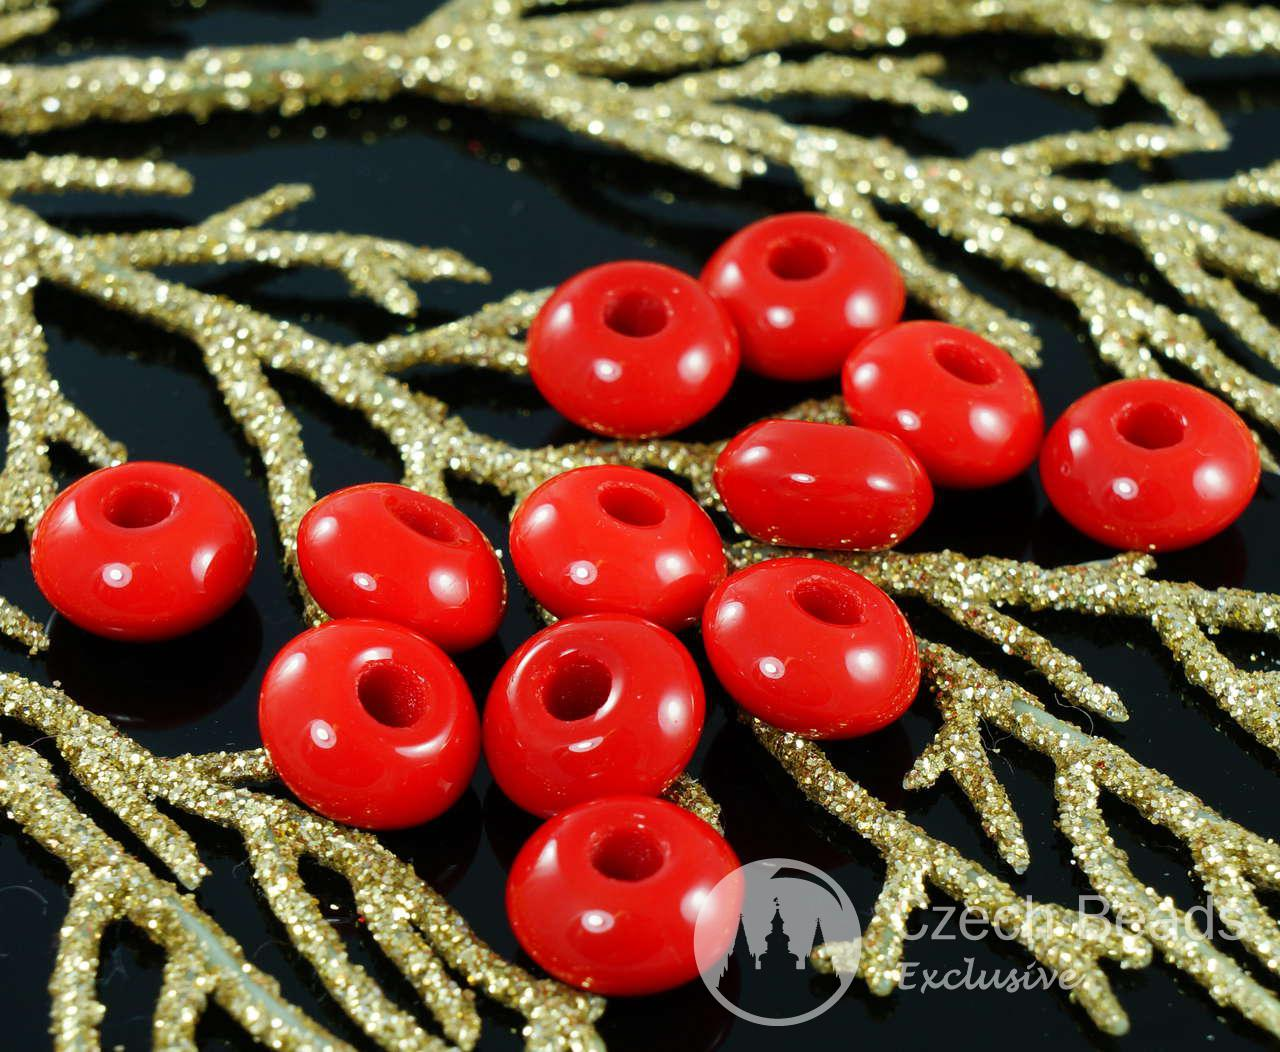 Red Large Hole Roller Pony Ring Crow Beads 11mm x 6mm 10pcs for $2.25 from Czech Beads Exclusive